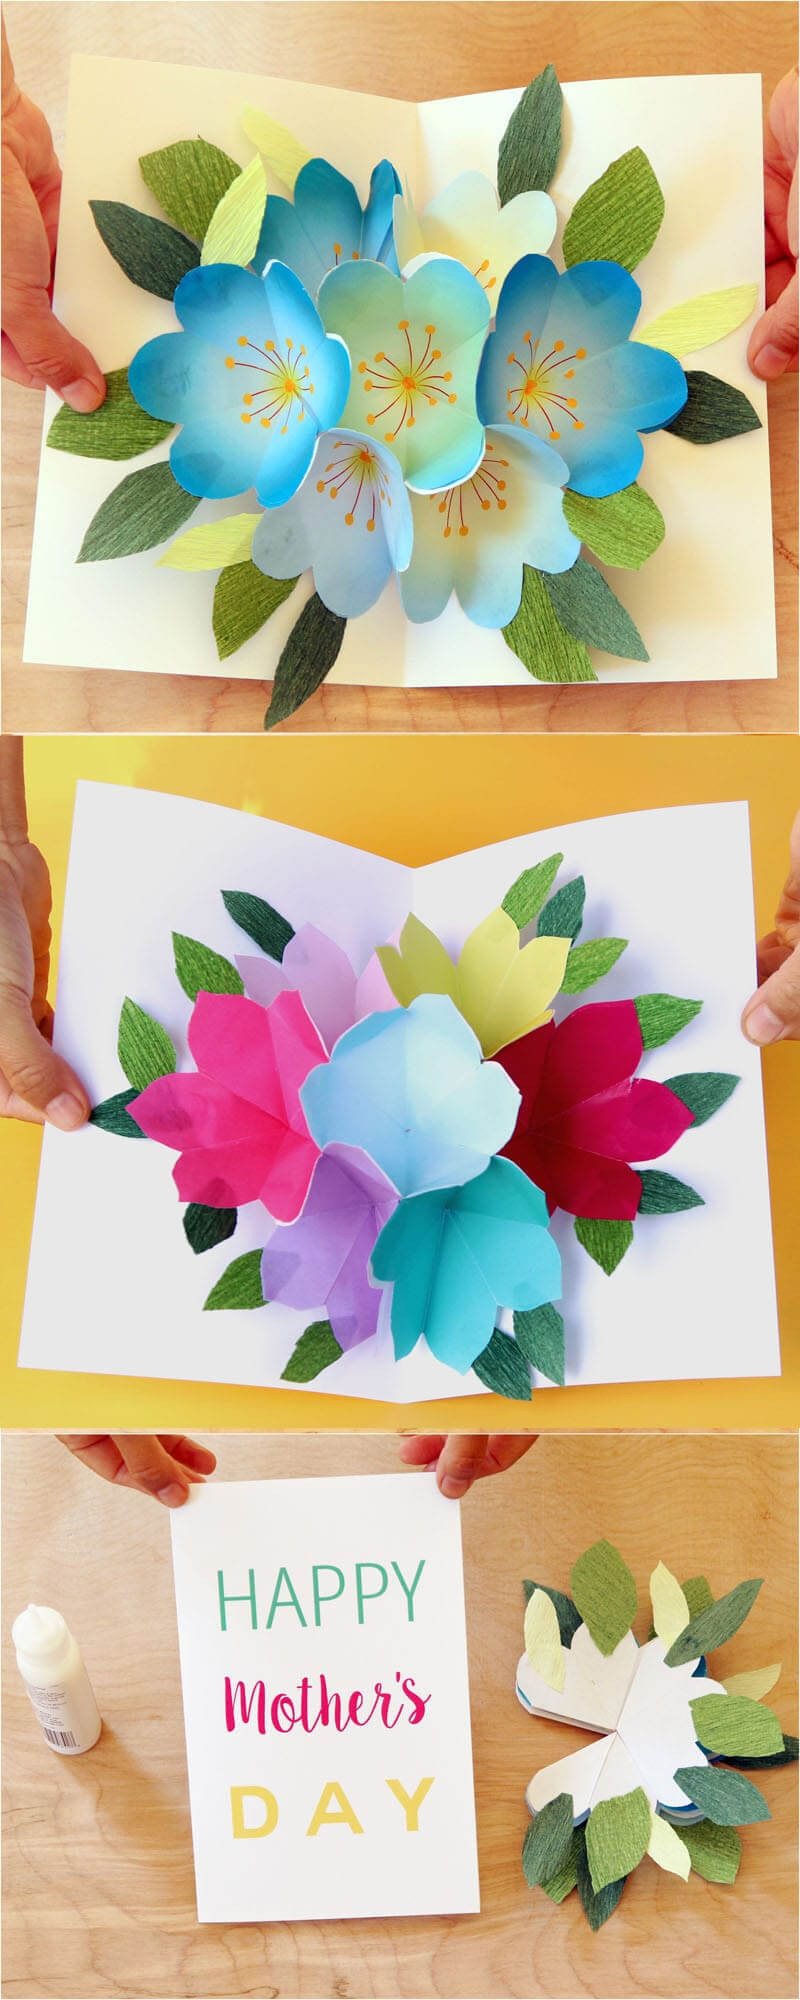 Pop Up Flowers Diy Printable Mother's Day Card - A Piece Of pertaining to Diy Pop Up Cards Templates